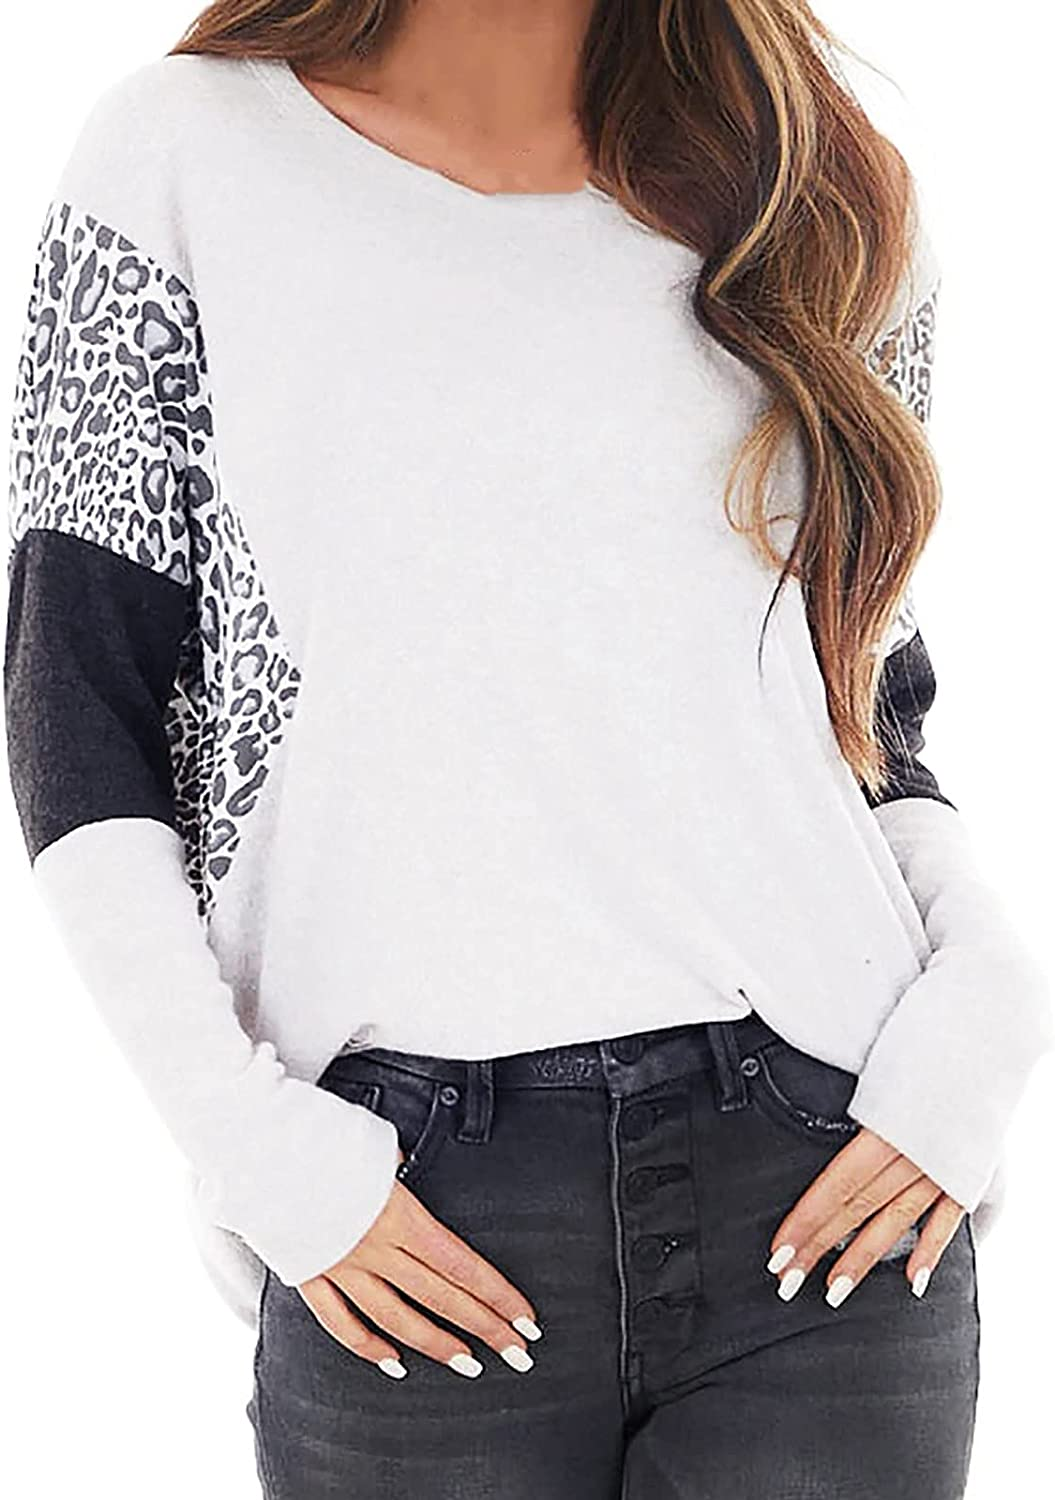 Leopard Stitching Print Blouse for Women Color Matching Long Sleeve Round Neck Shirts Casual Loose Tunic Tops Tops